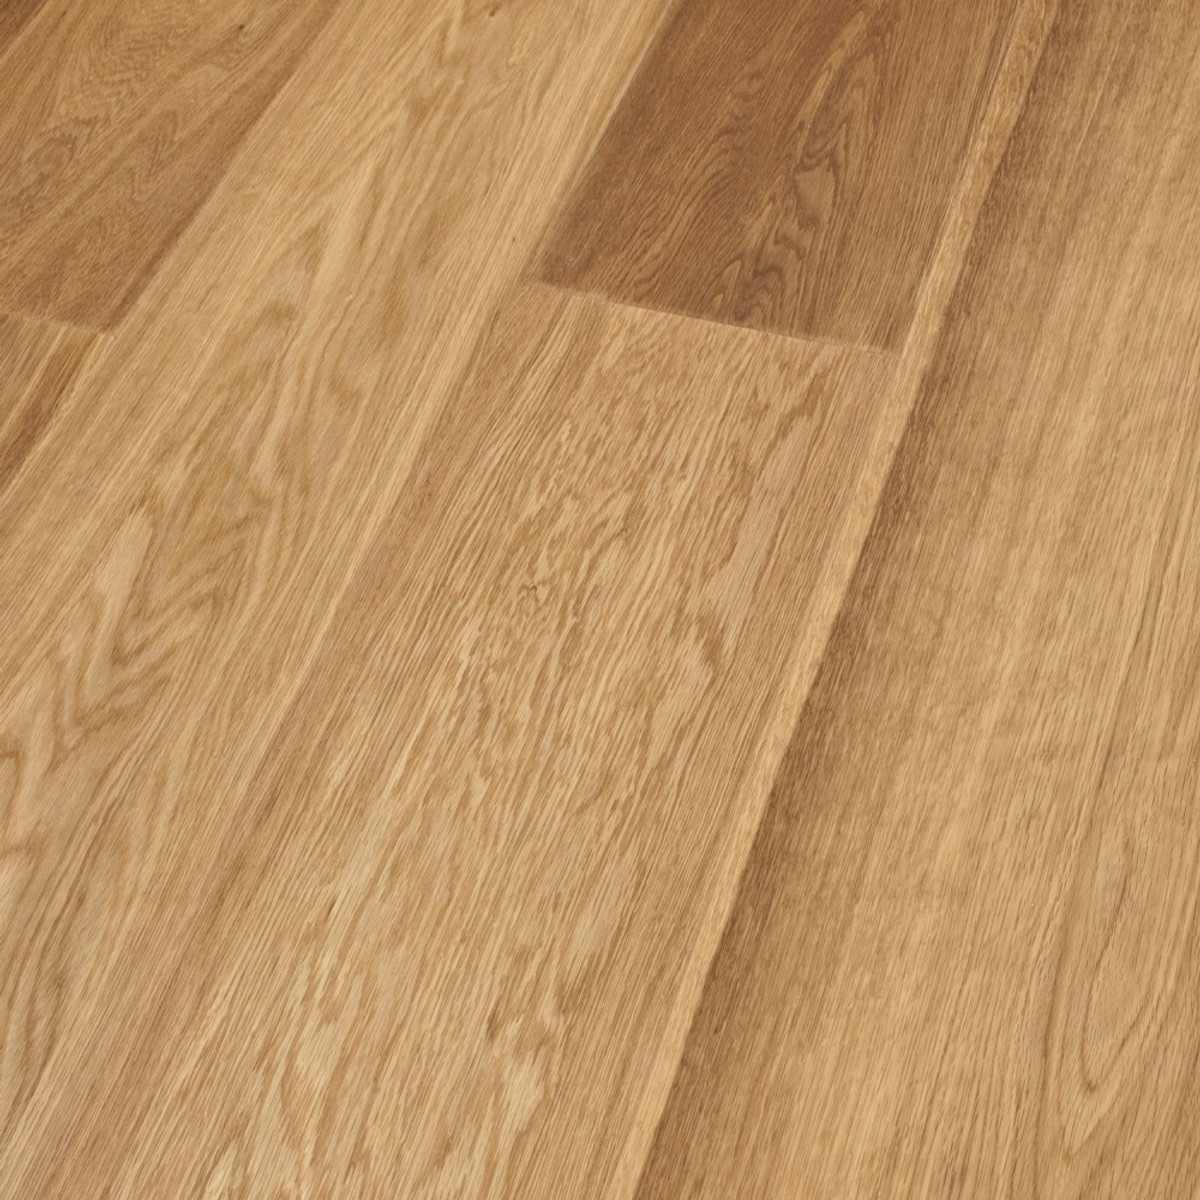 Tuscany Classic Smoked Brushed  & Lacquered Engineered Real Wood Flooring